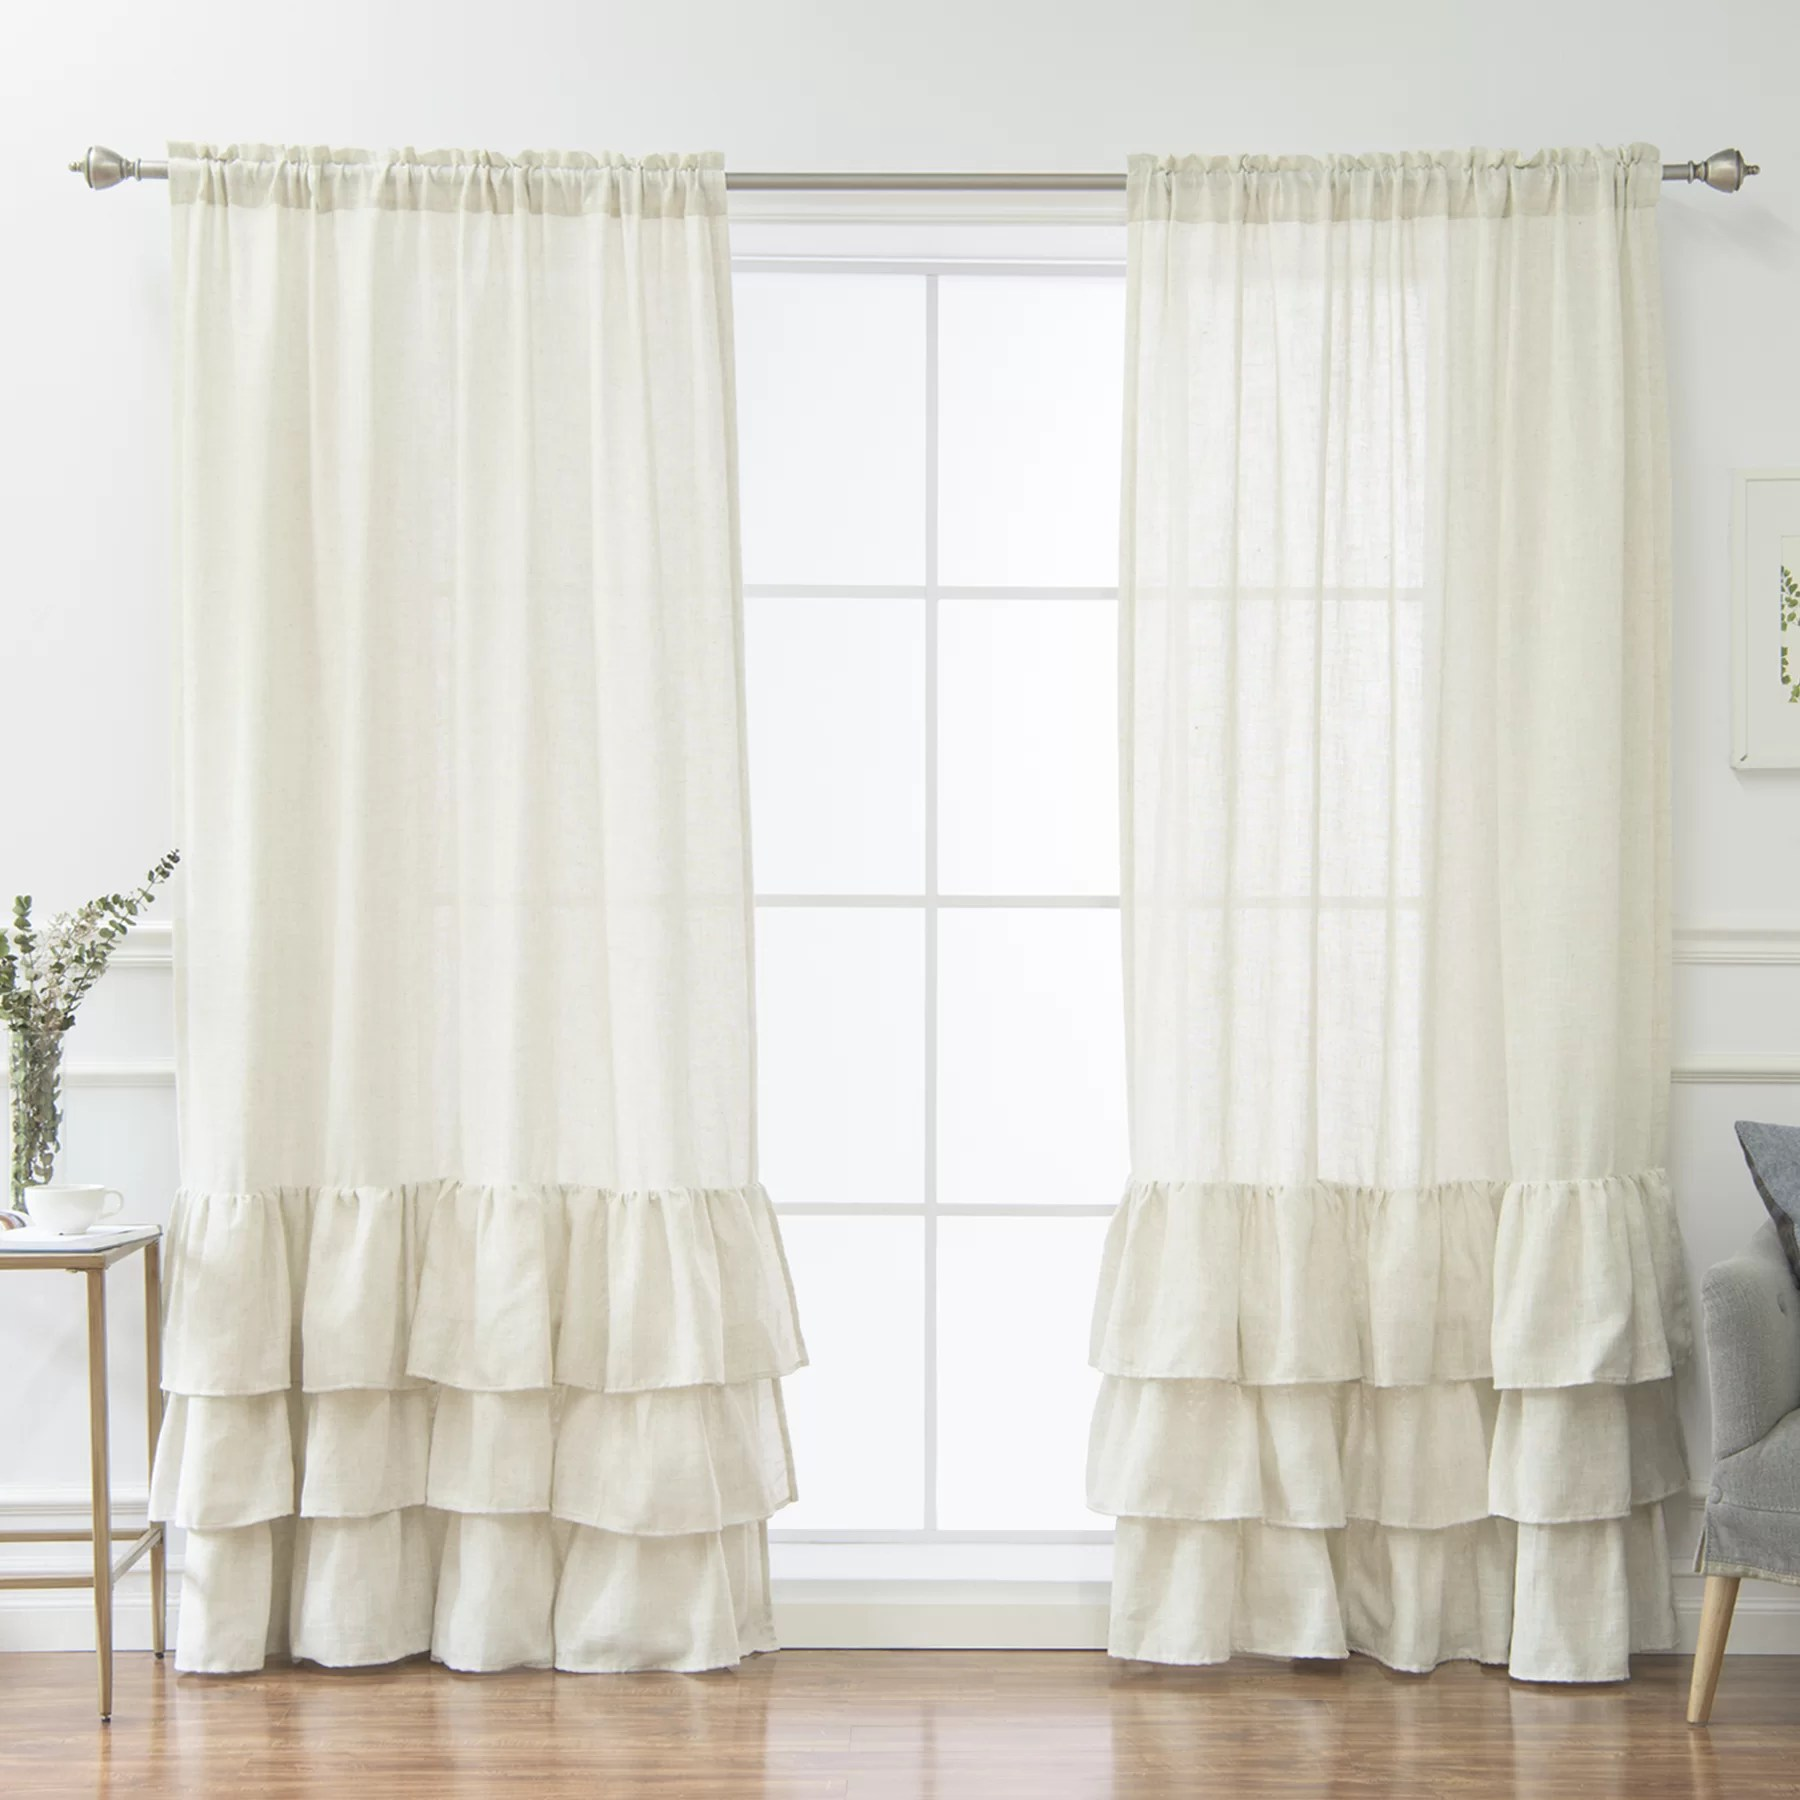 Ruffle Curtain Panel Newnan Blend Ruffle Solid Room Darkening Thermal Rod Pocket Single Curtain Panel